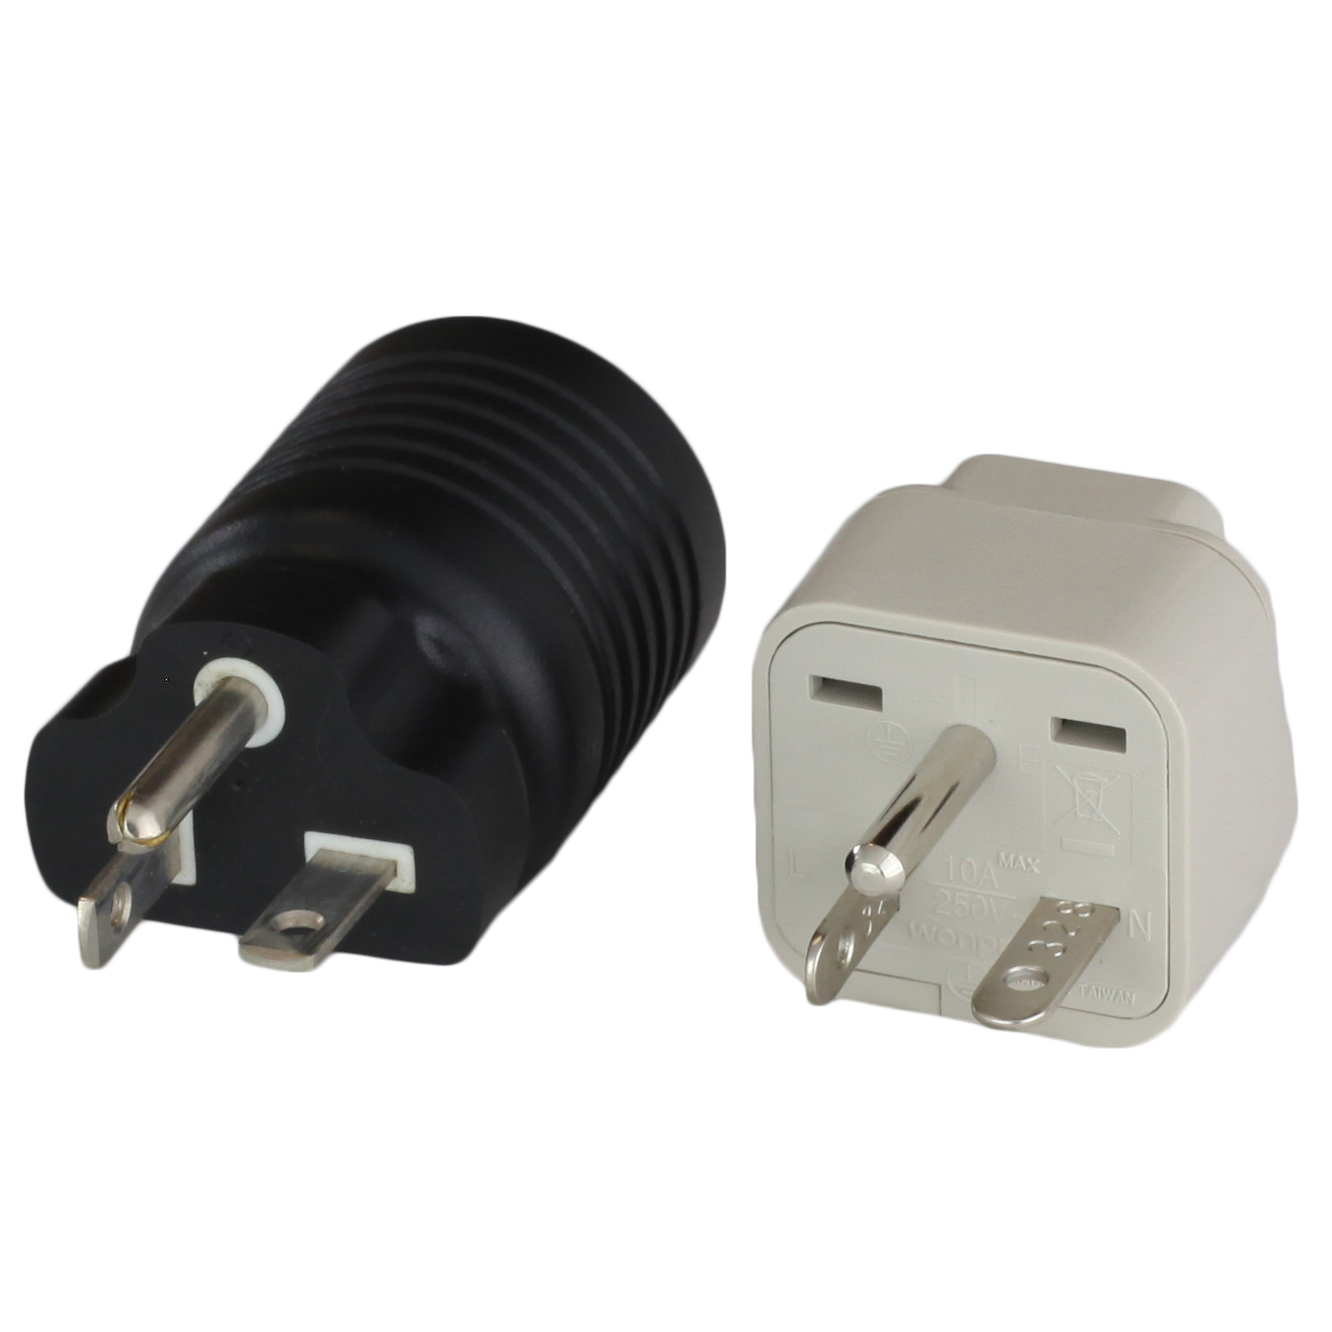 Photo of Adapter NEMA 6-20P to L6-20R 20A 250V BLACK